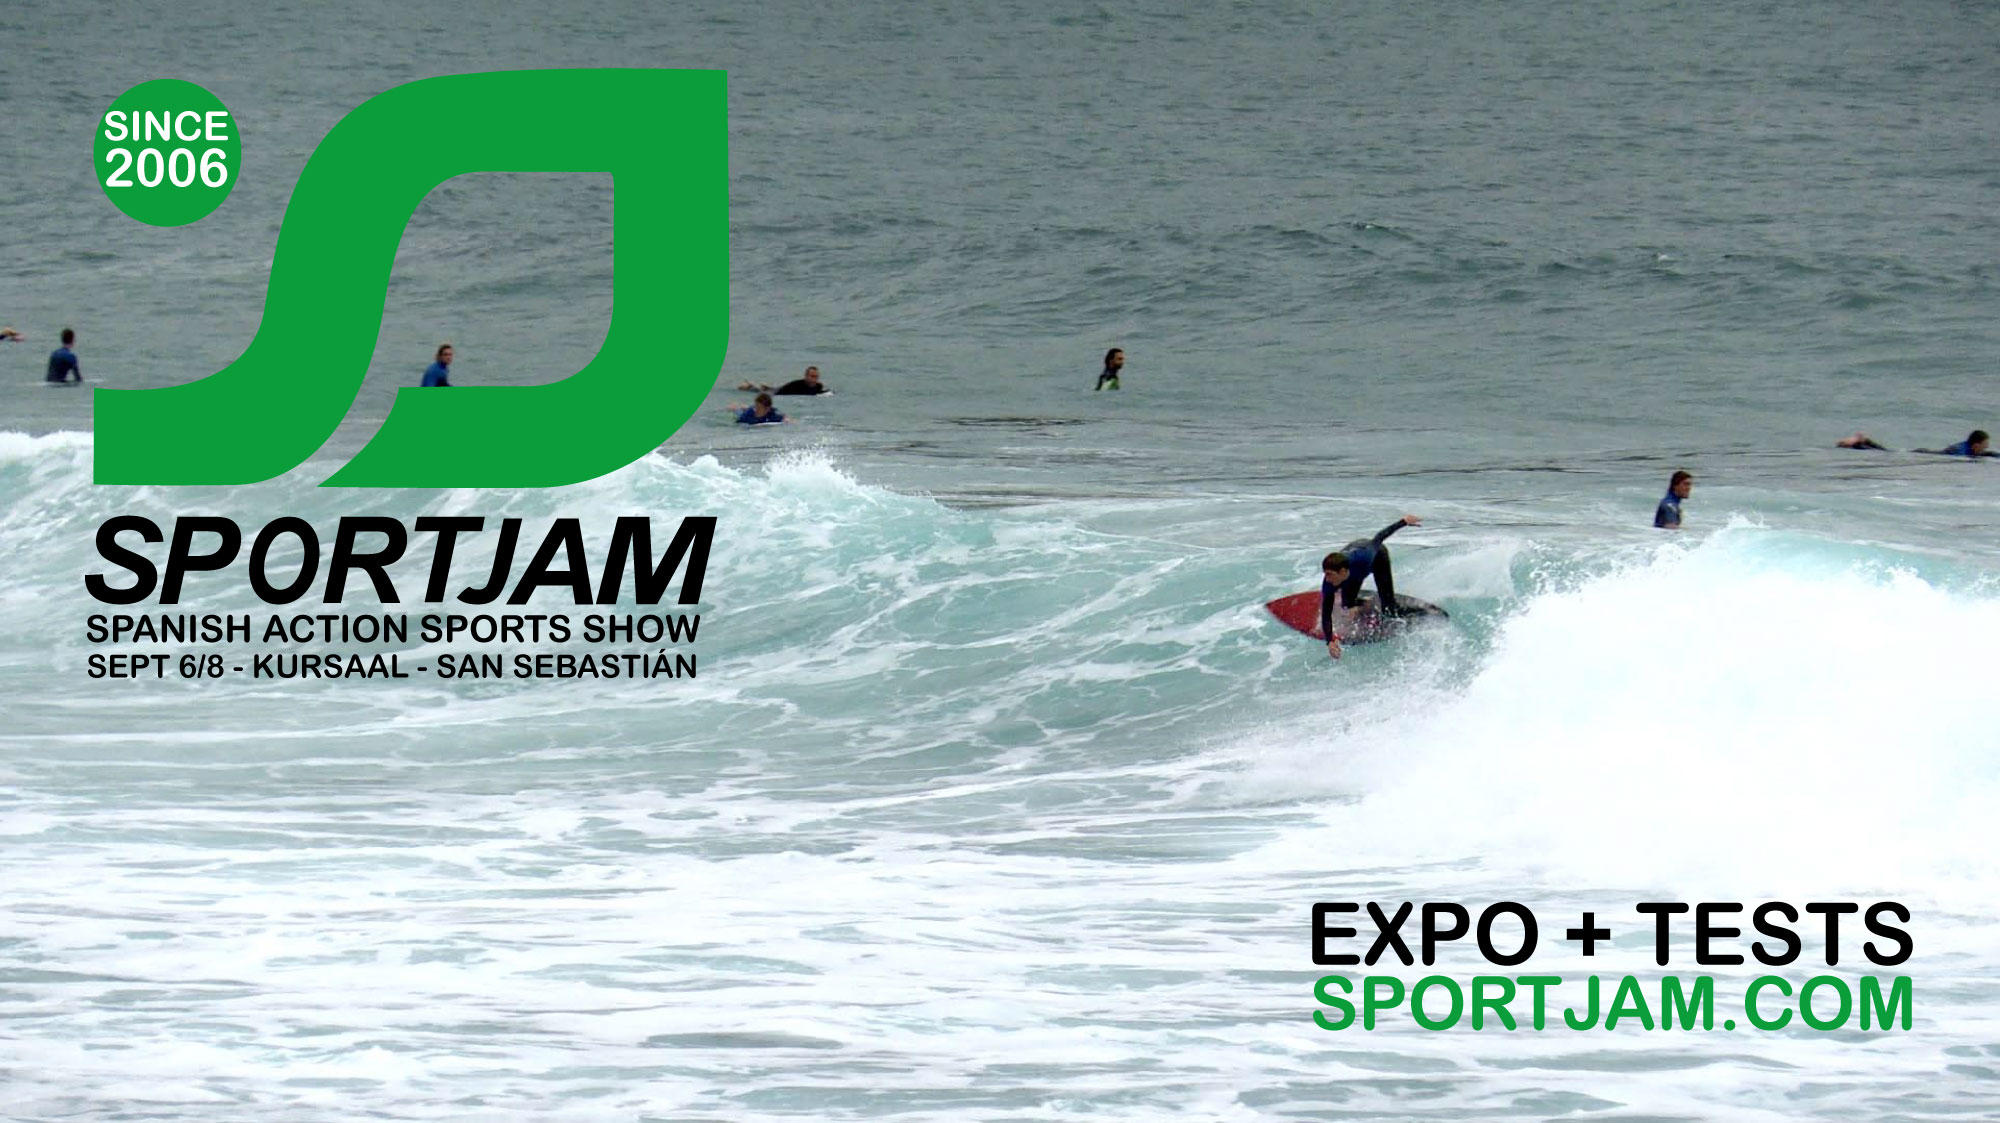 Sportjam Spanish action spors show will place from september 6 to 8 in San Sebastian city.